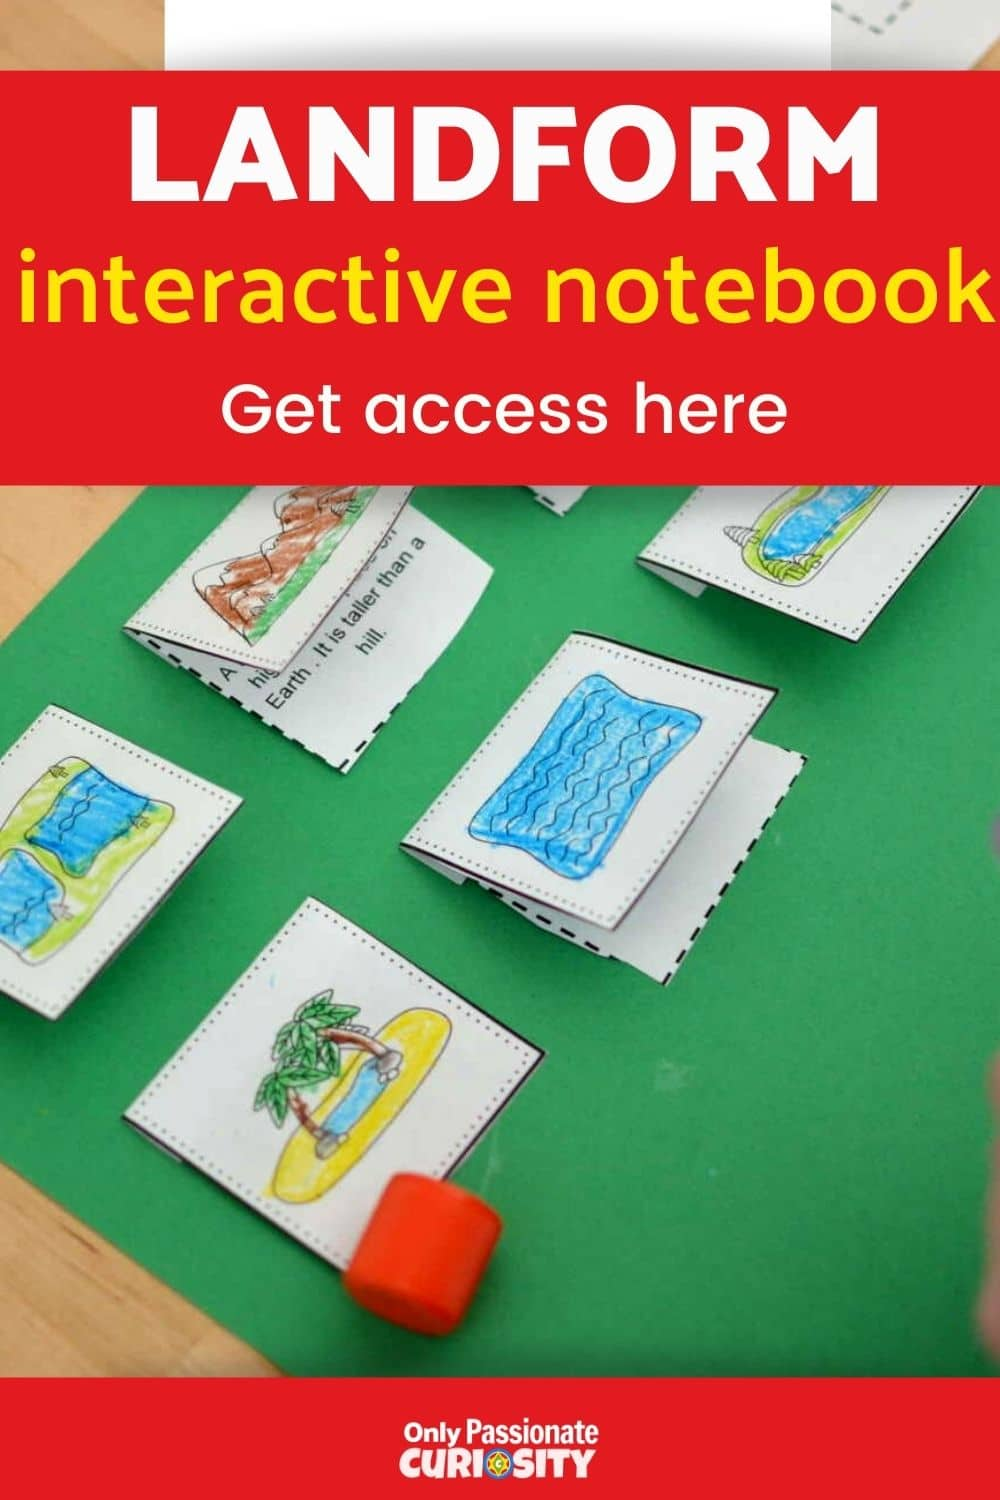 Make your geography more fun with the Hands-on Geography Landform Interactive Notebook pack. This Landforms Interactive Notebook has a couple of different elements: Landforms Visual Dictionary, Mapping the Landforms of the United States, Interactive Notebook Elements